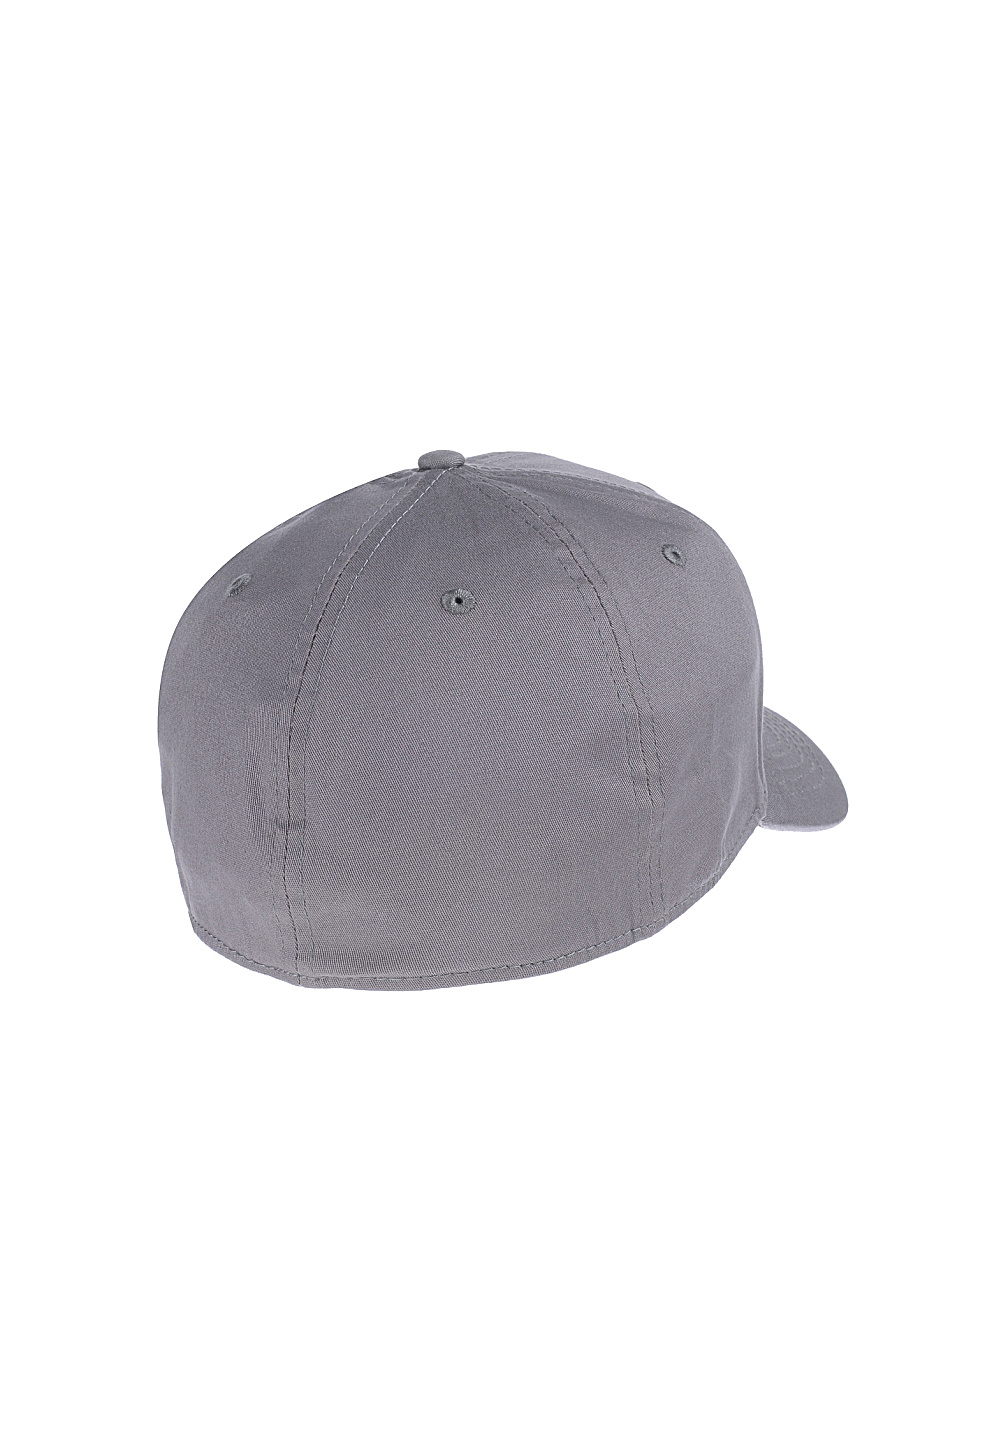 b19b01c7ab7 ... OAKLEY Metal Square - Fitted Cap for Men - Grey. Back to Overview. 1   2  3  4. Previous. Next